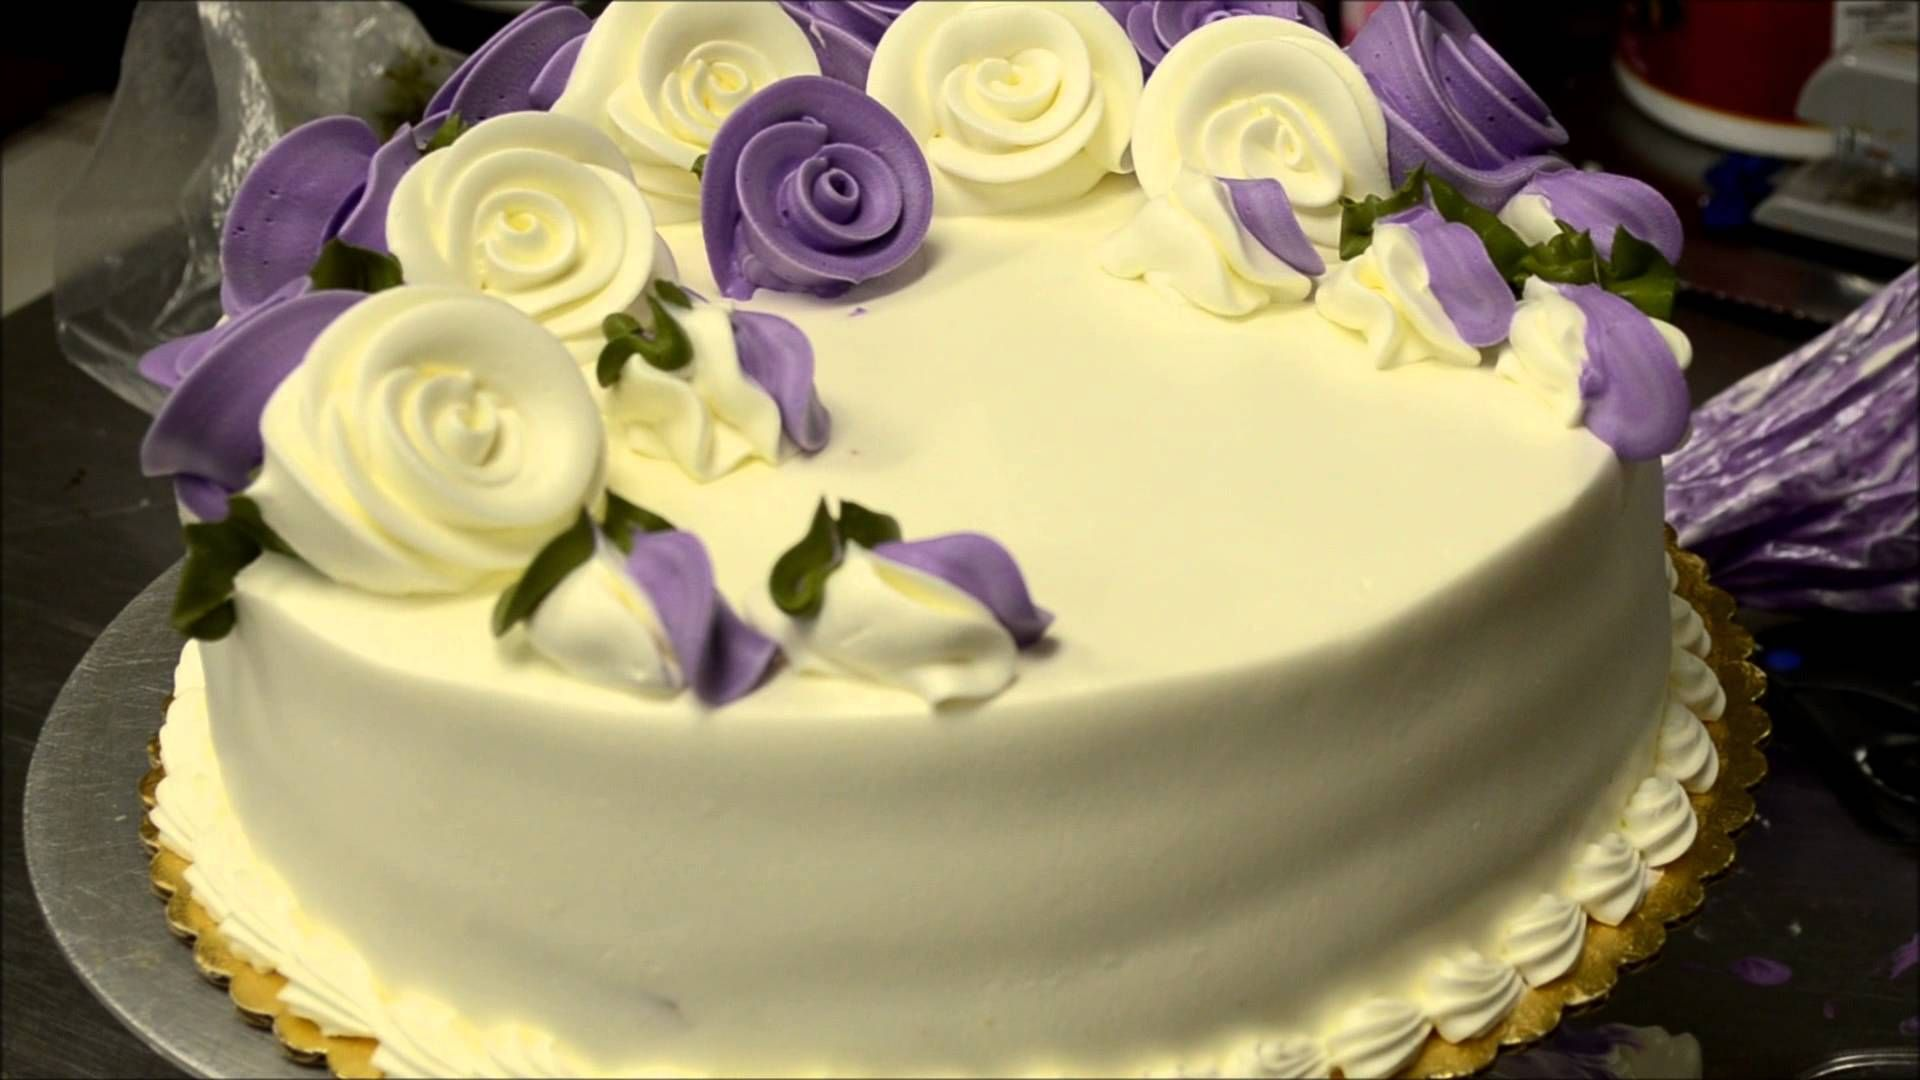 Enjoyable Use Whipped Cream Icing To Design A Perfect Eatable Flowers Cake Funny Birthday Cards Online Alyptdamsfinfo